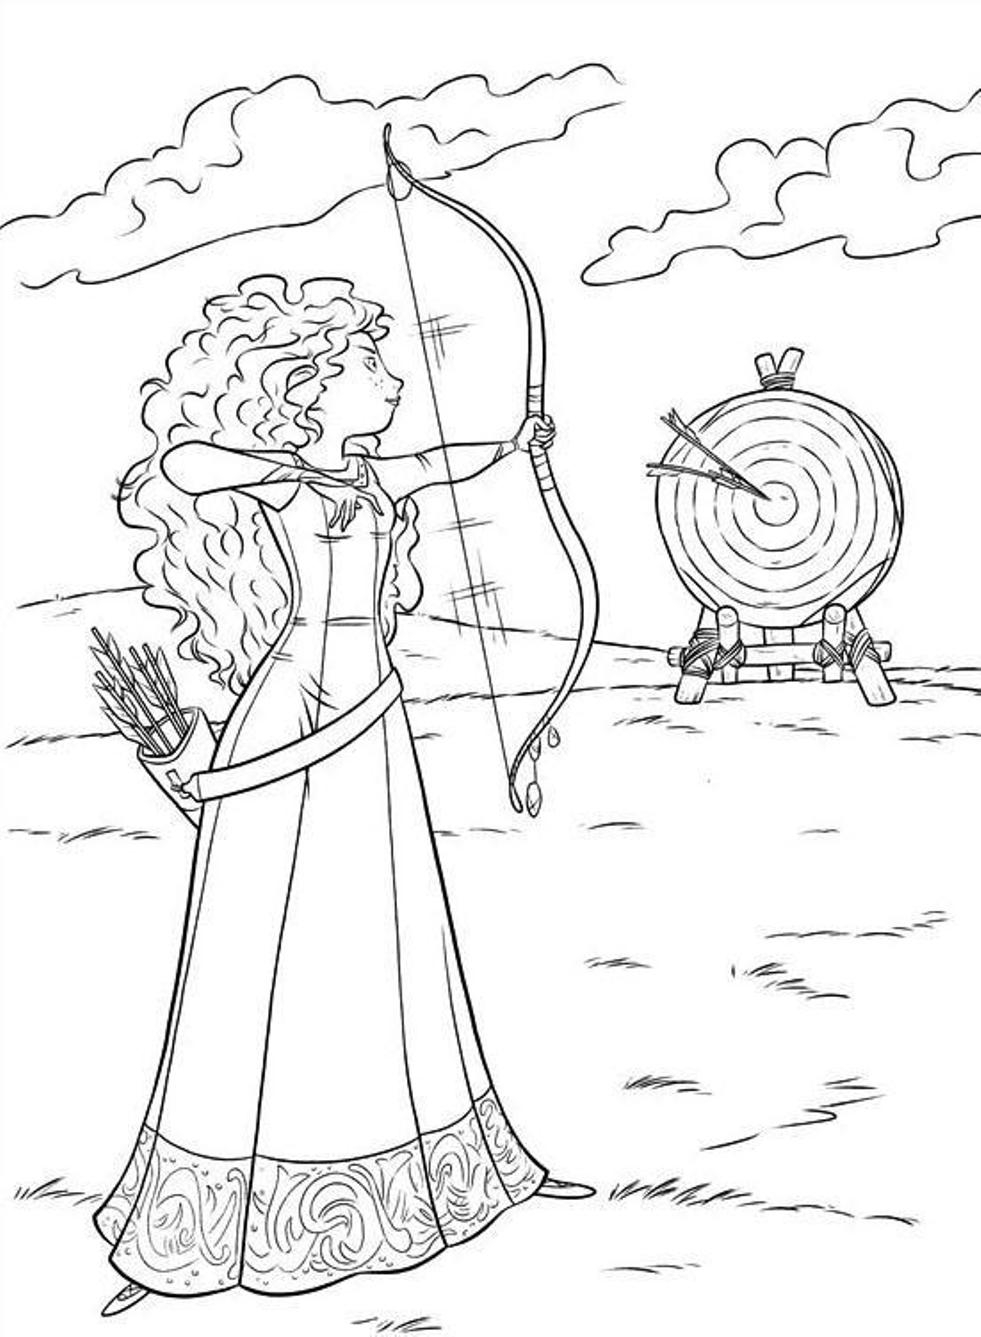 Merida Coloring Pages Brave Coloring Pages Merida Cartoon Coloring Pages Of